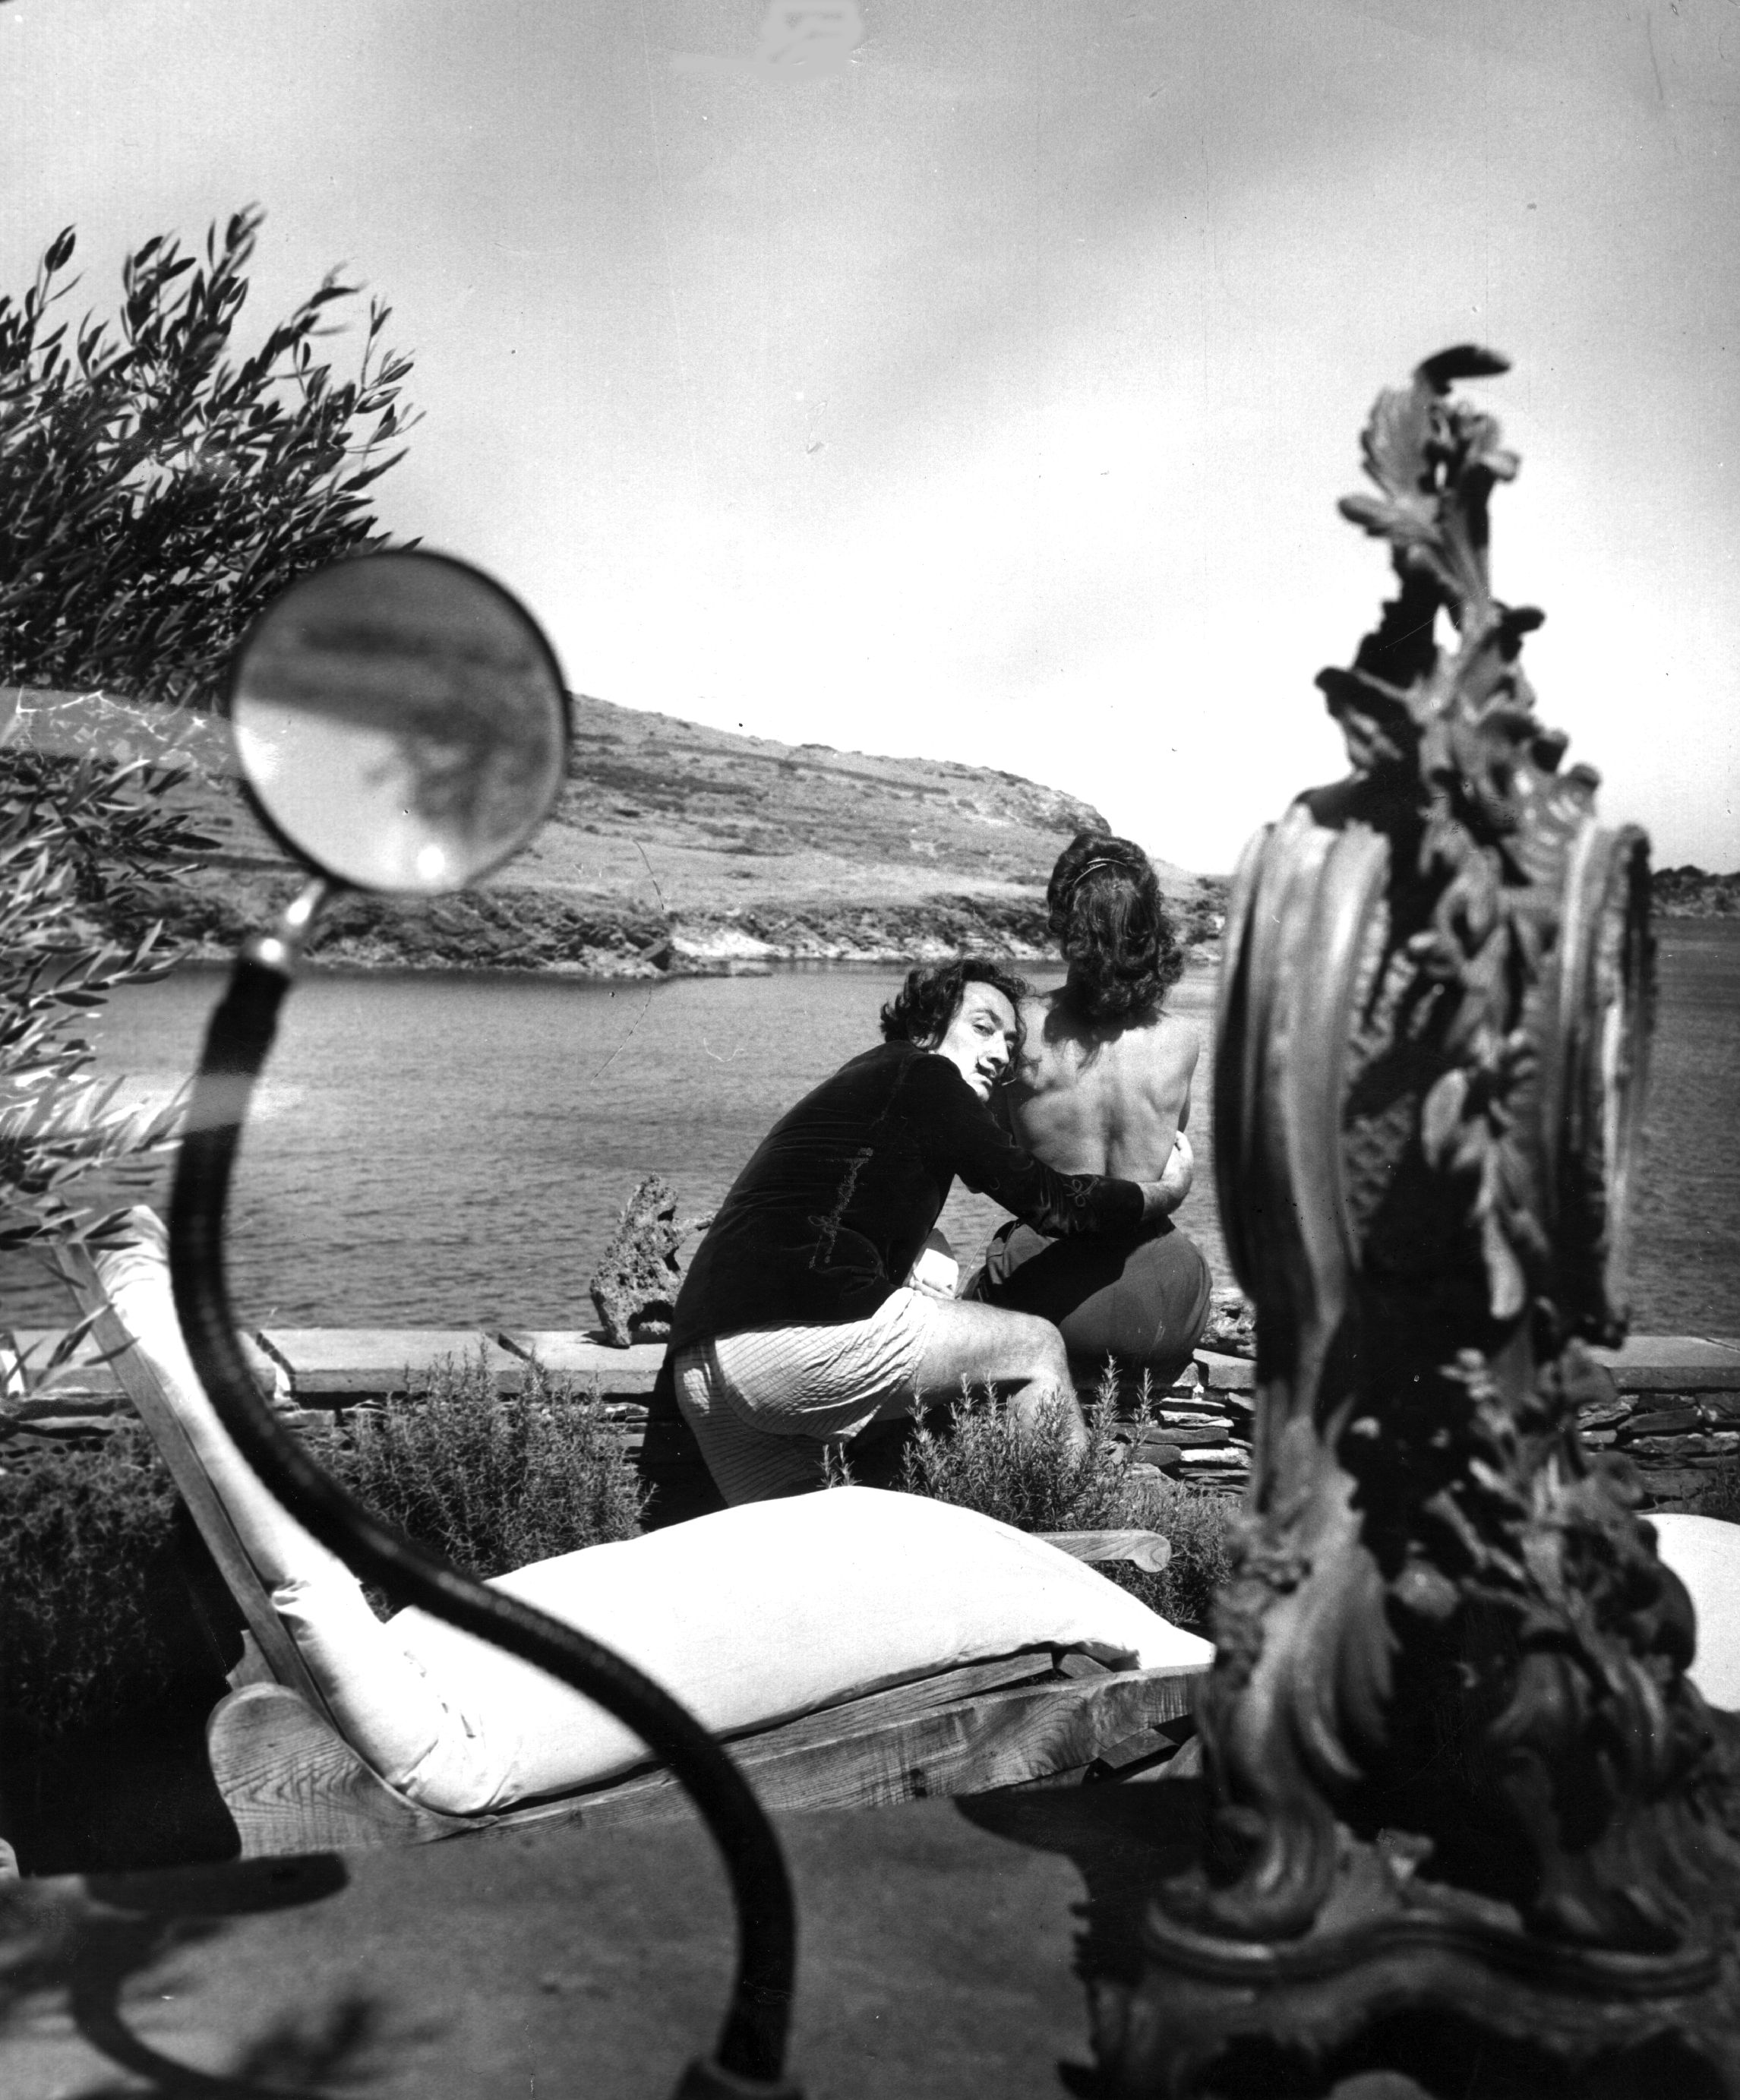 Spanish surrealist artist Salvador Dali (1904 - 1989) with his wife Gala (1894 - 1982) at the garden of his home in Cadaques on the Spanish Costa Brava